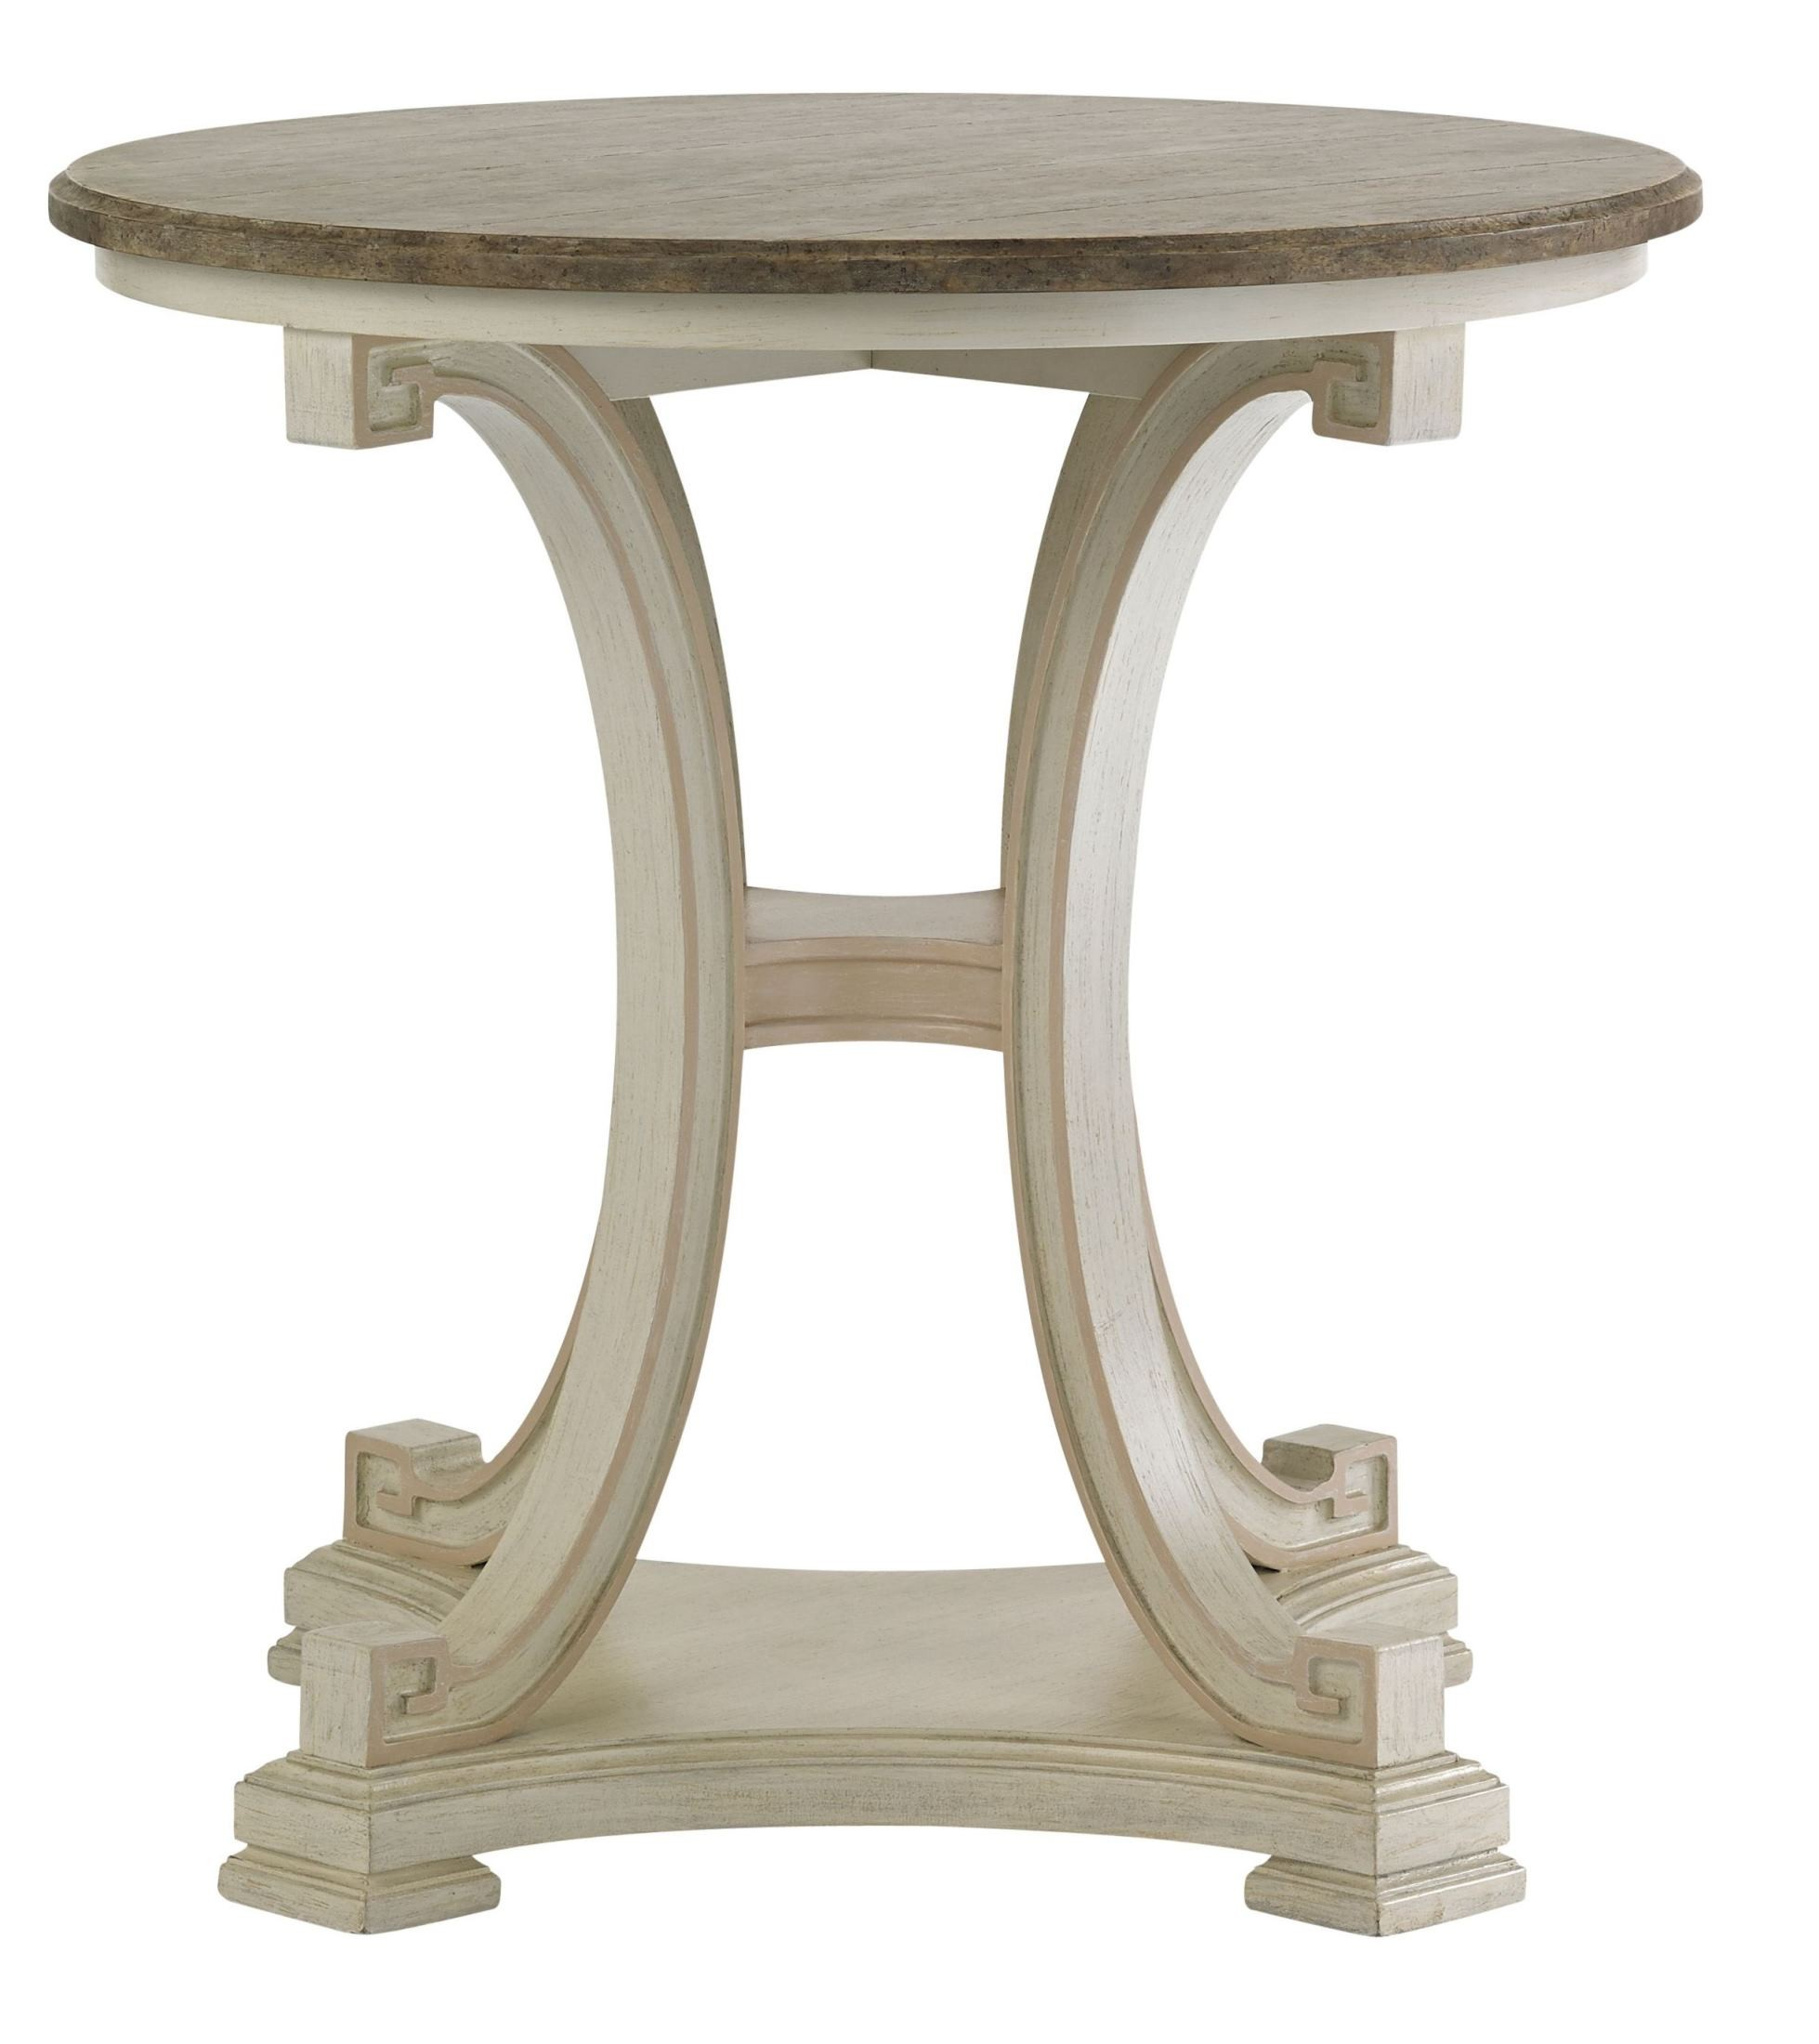 Preserve fairbanks occasional table set from stanley 340 for Furniture fairbanks